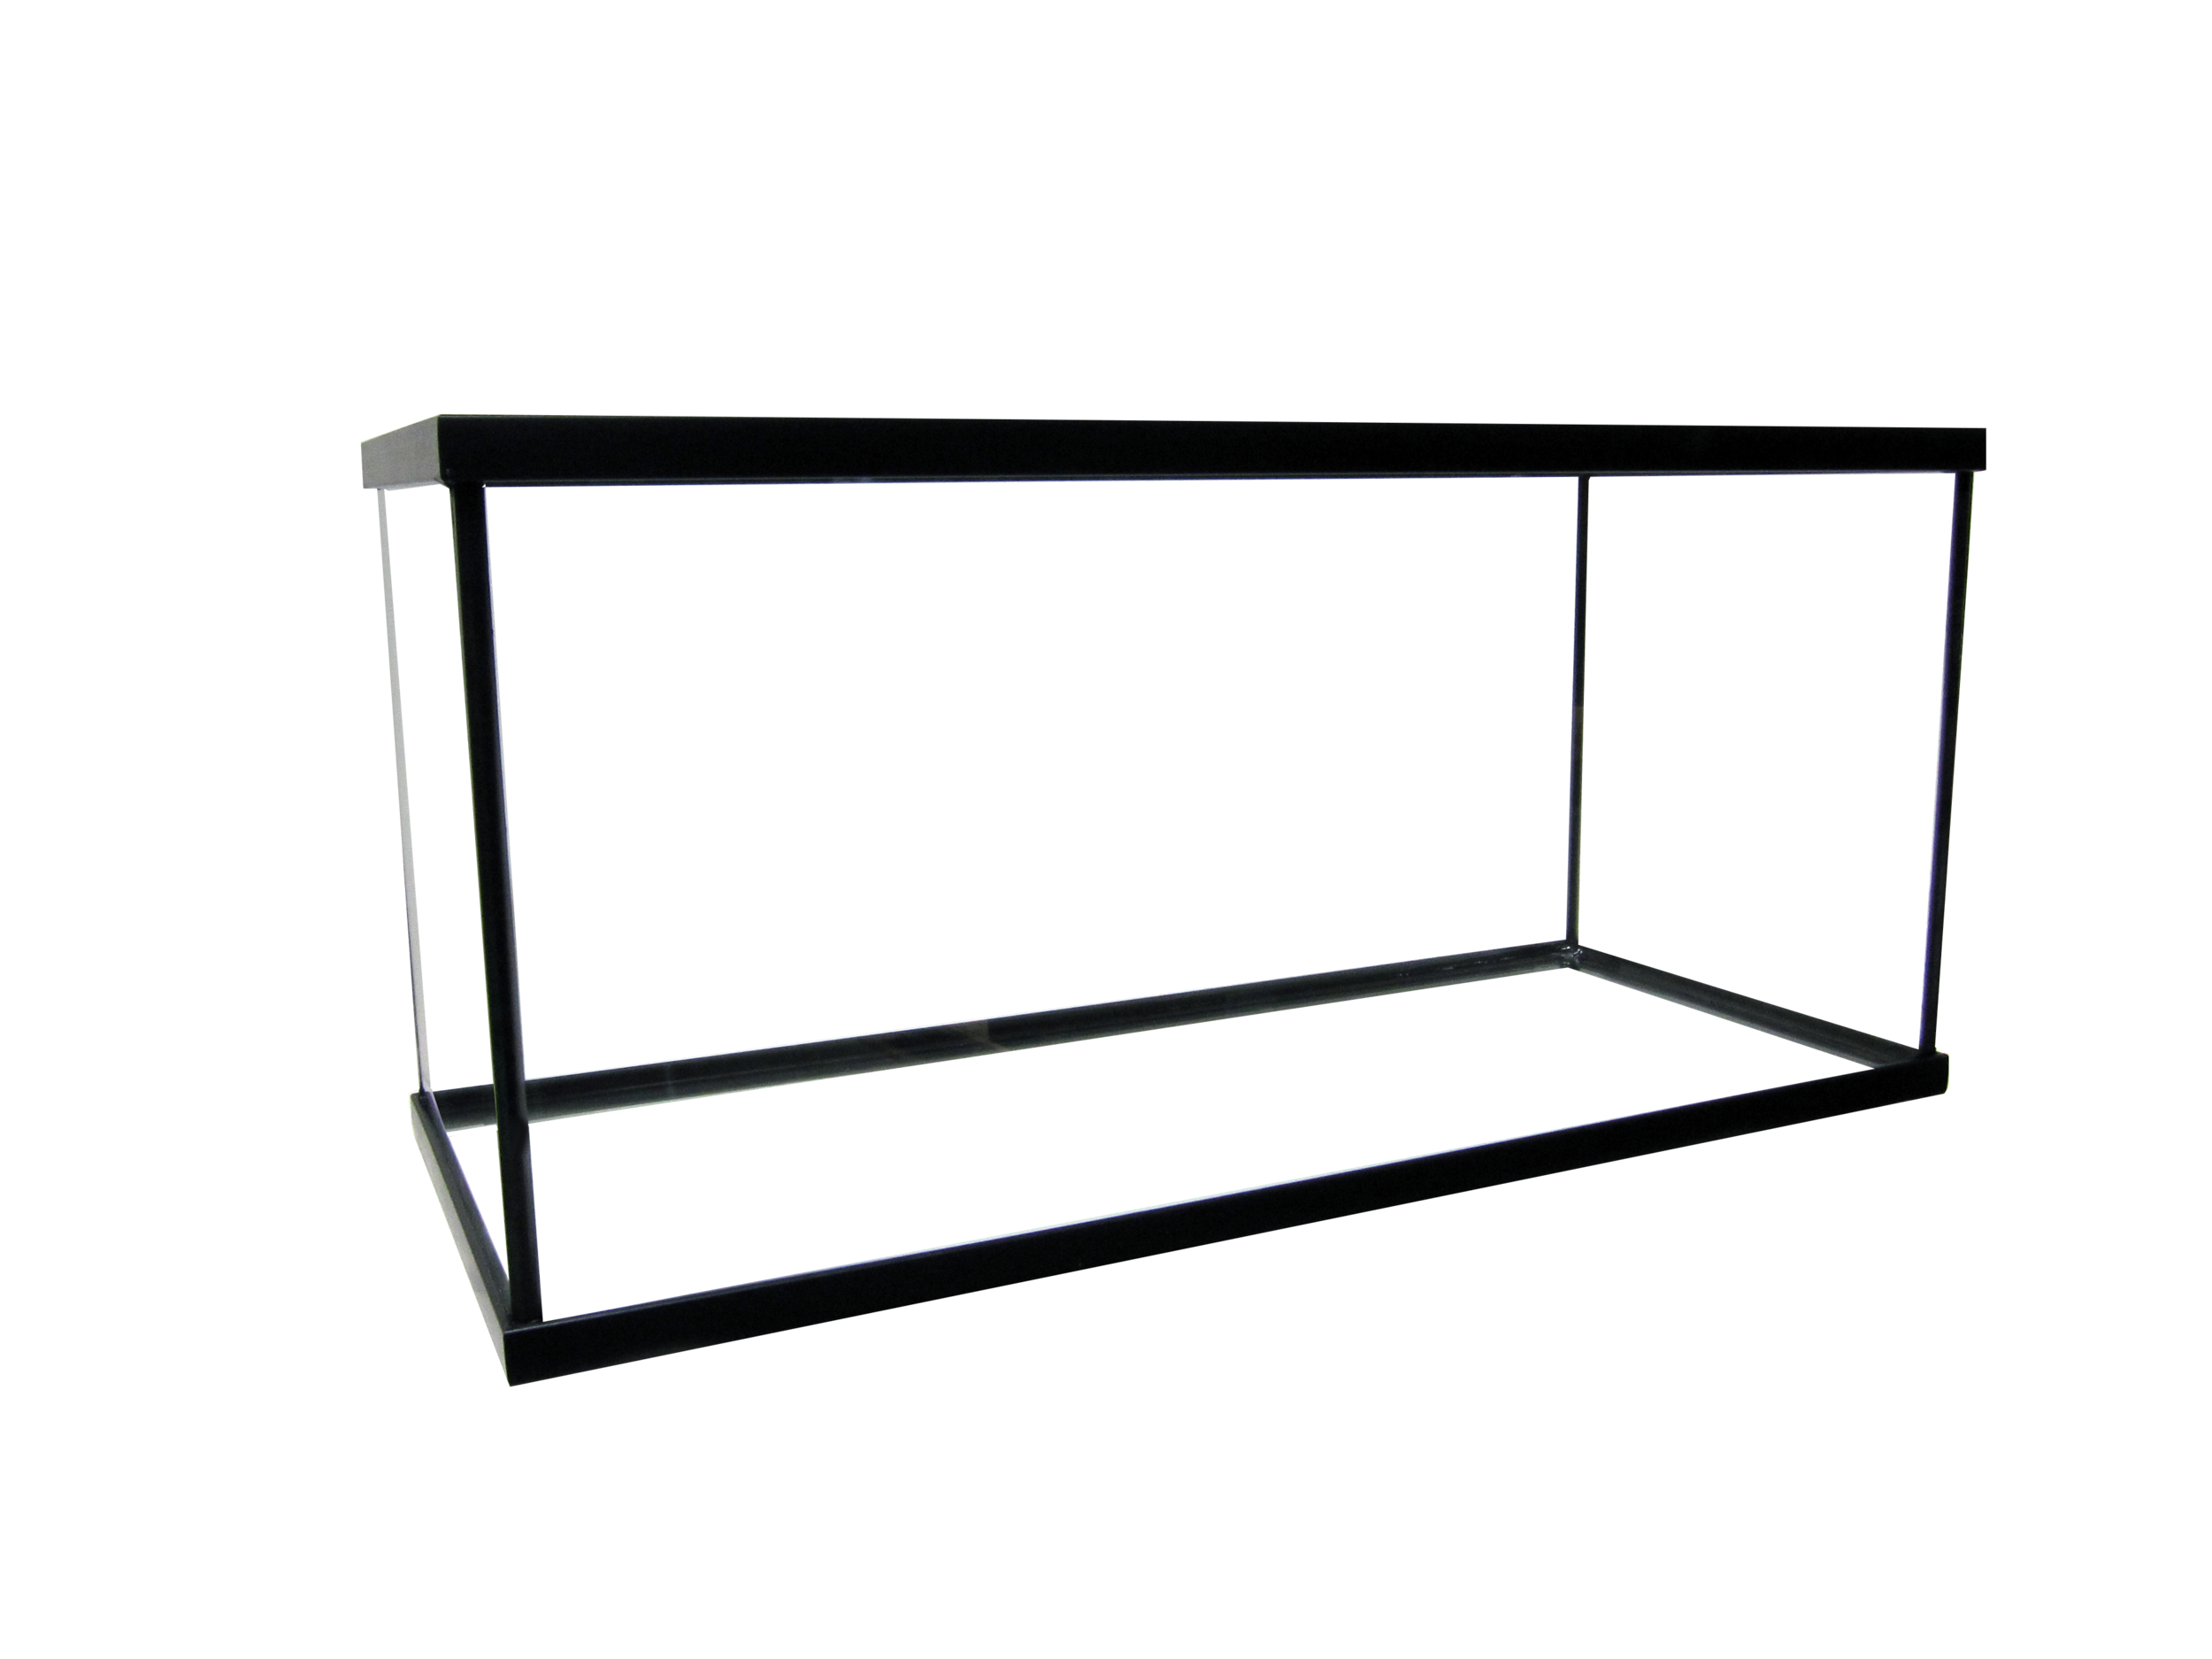 "40 Regular Aquarium - 36x15x16""   SKU#: AM11042  UPC#: 7-49729-11042-2  Product Dimension: 36.5""x15.5""x17.25""  Capacity: Approximately 40 gallons  Weight: 48 lbs"